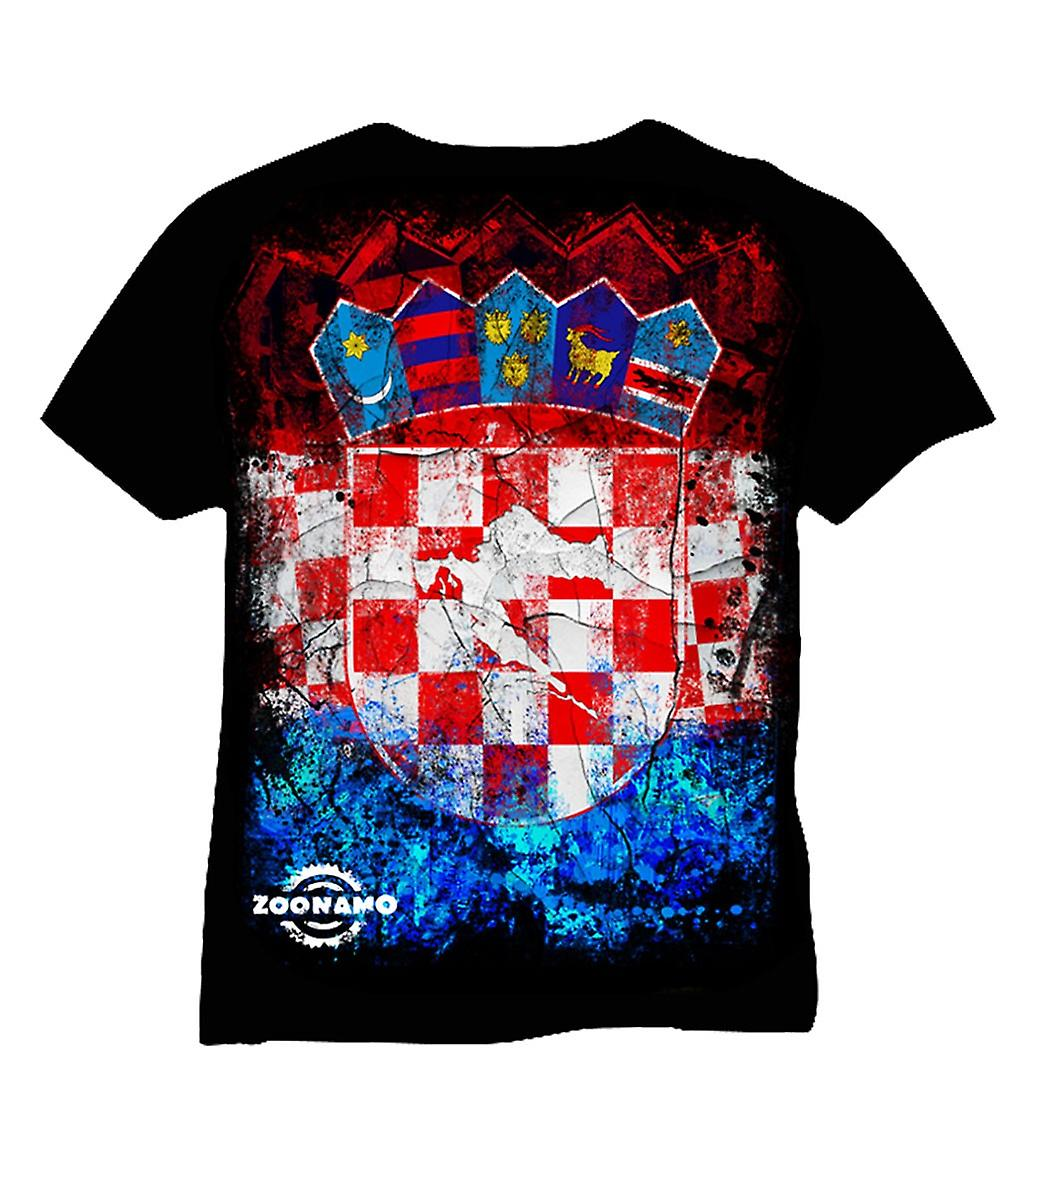 Zoonamo T-Shirt Croatia of classic